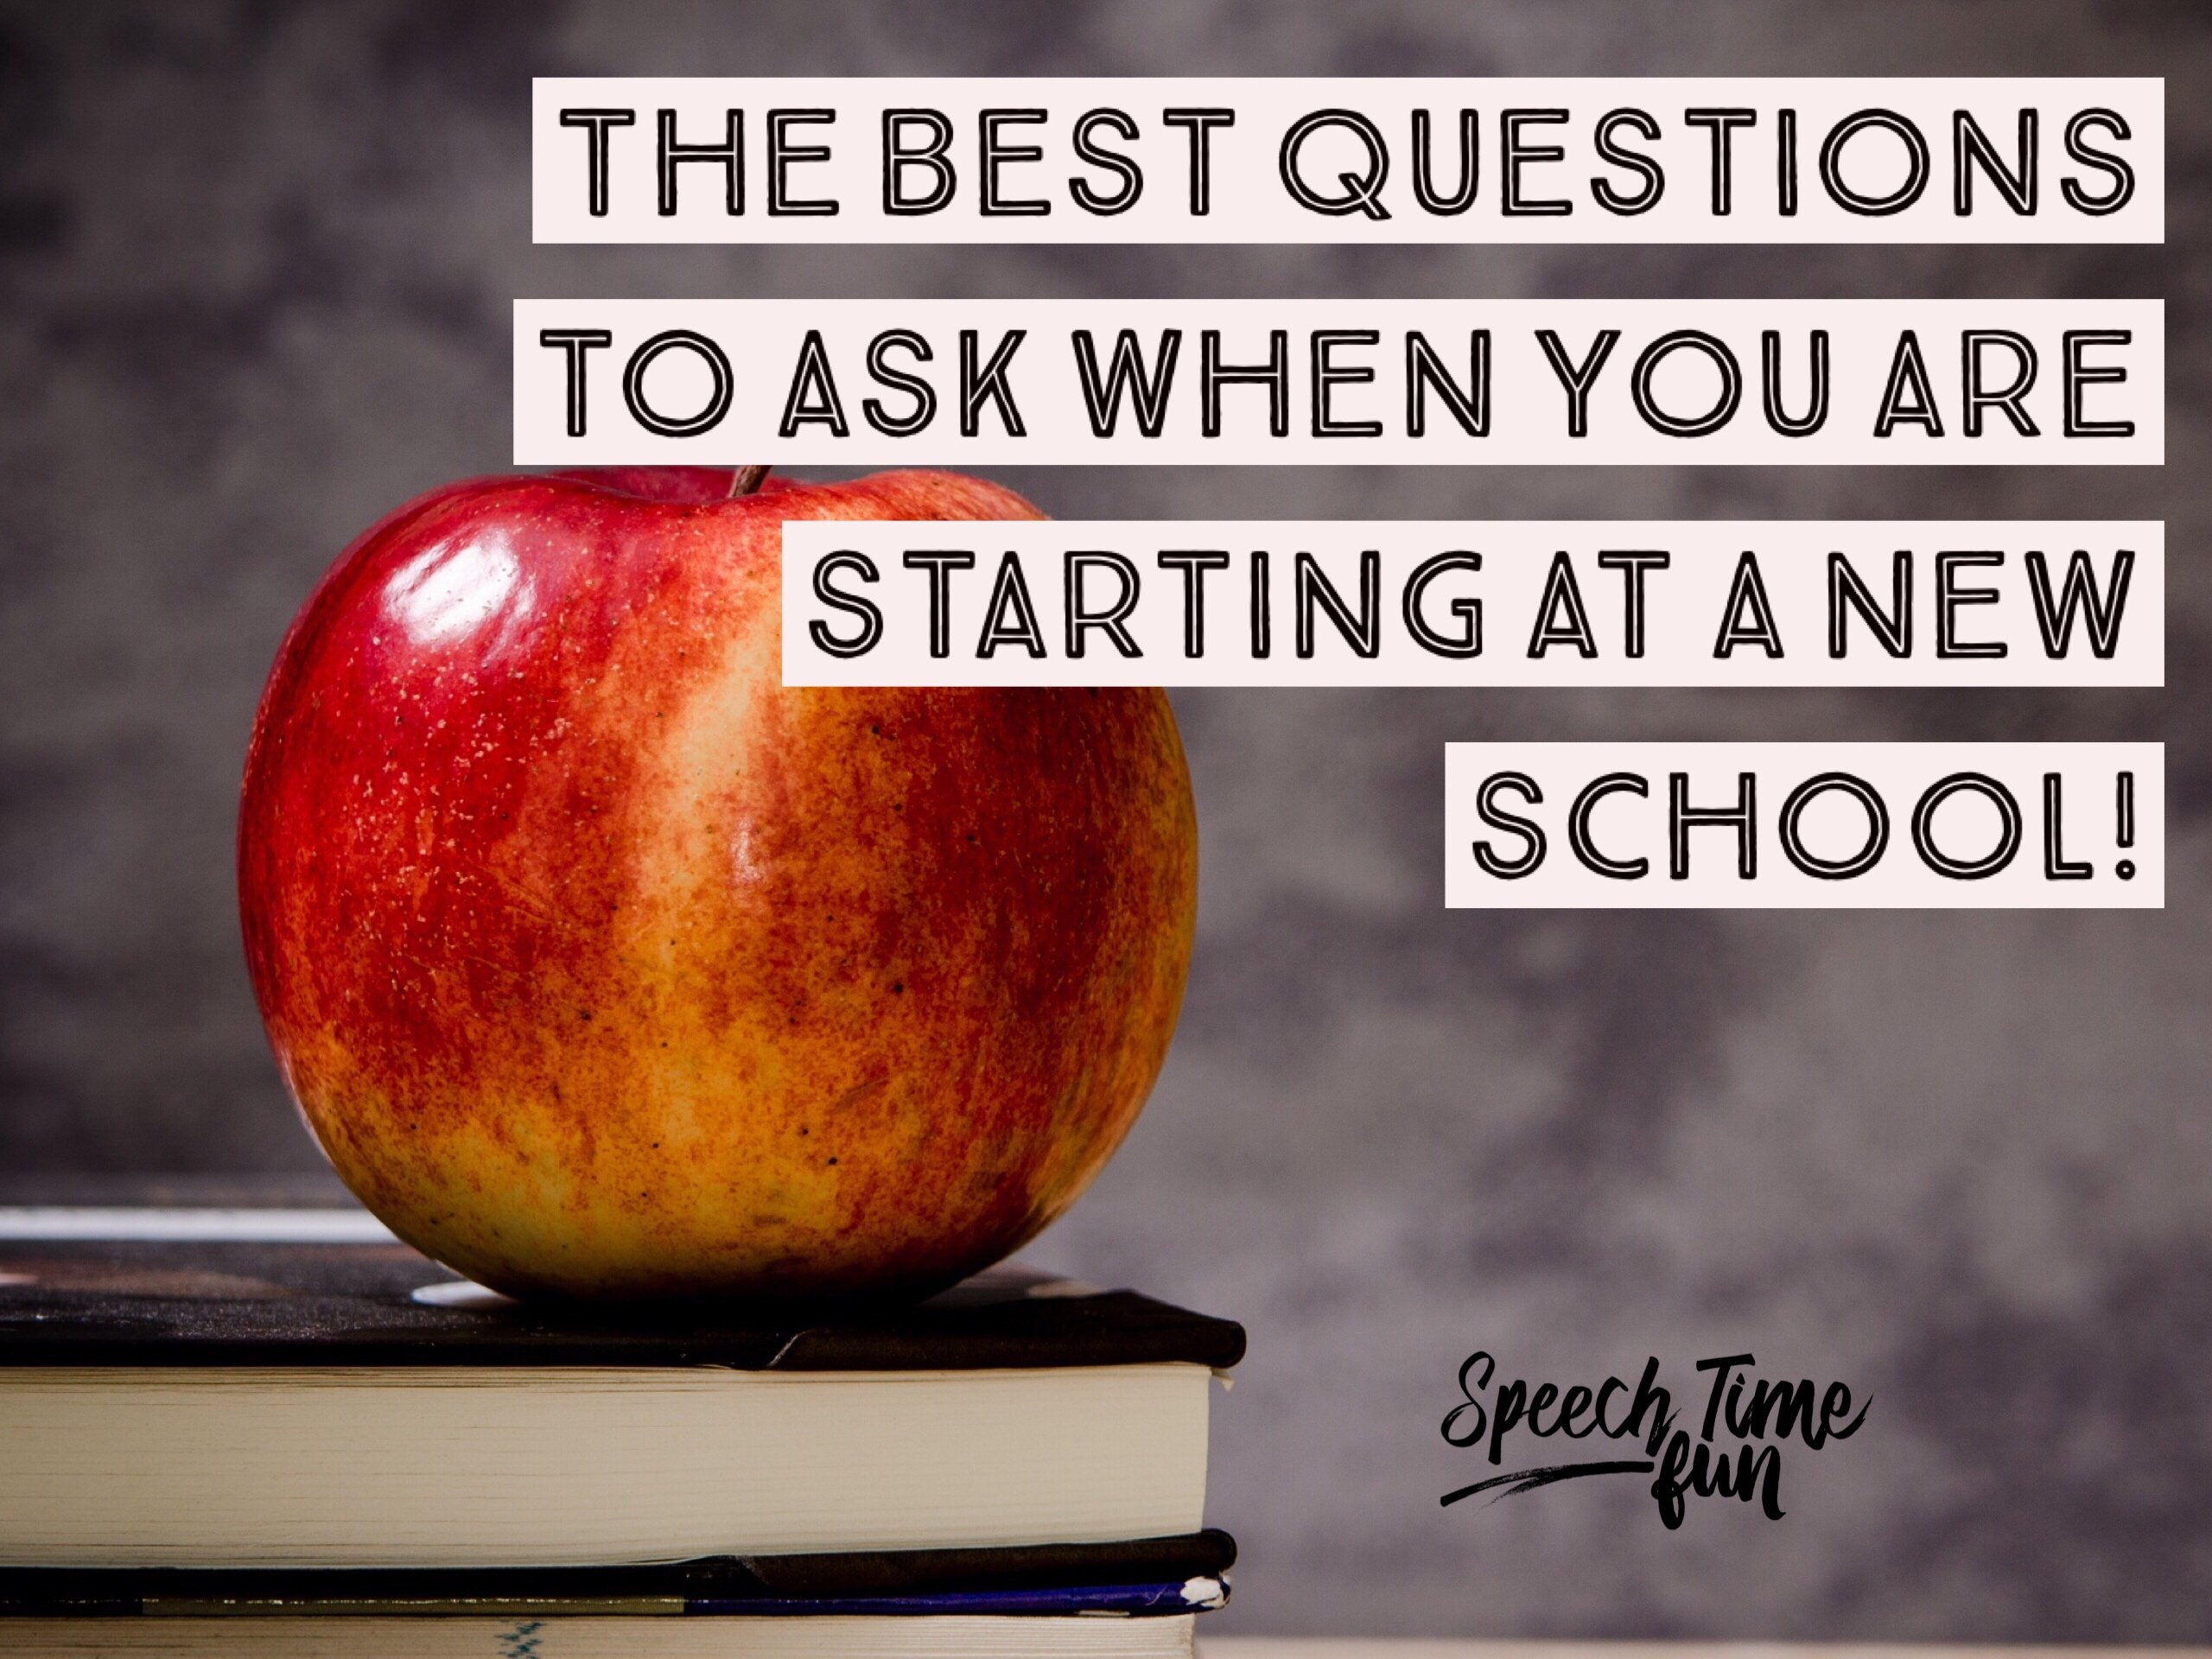 The BEST questions for SLPs to ask when you are starting at a new school